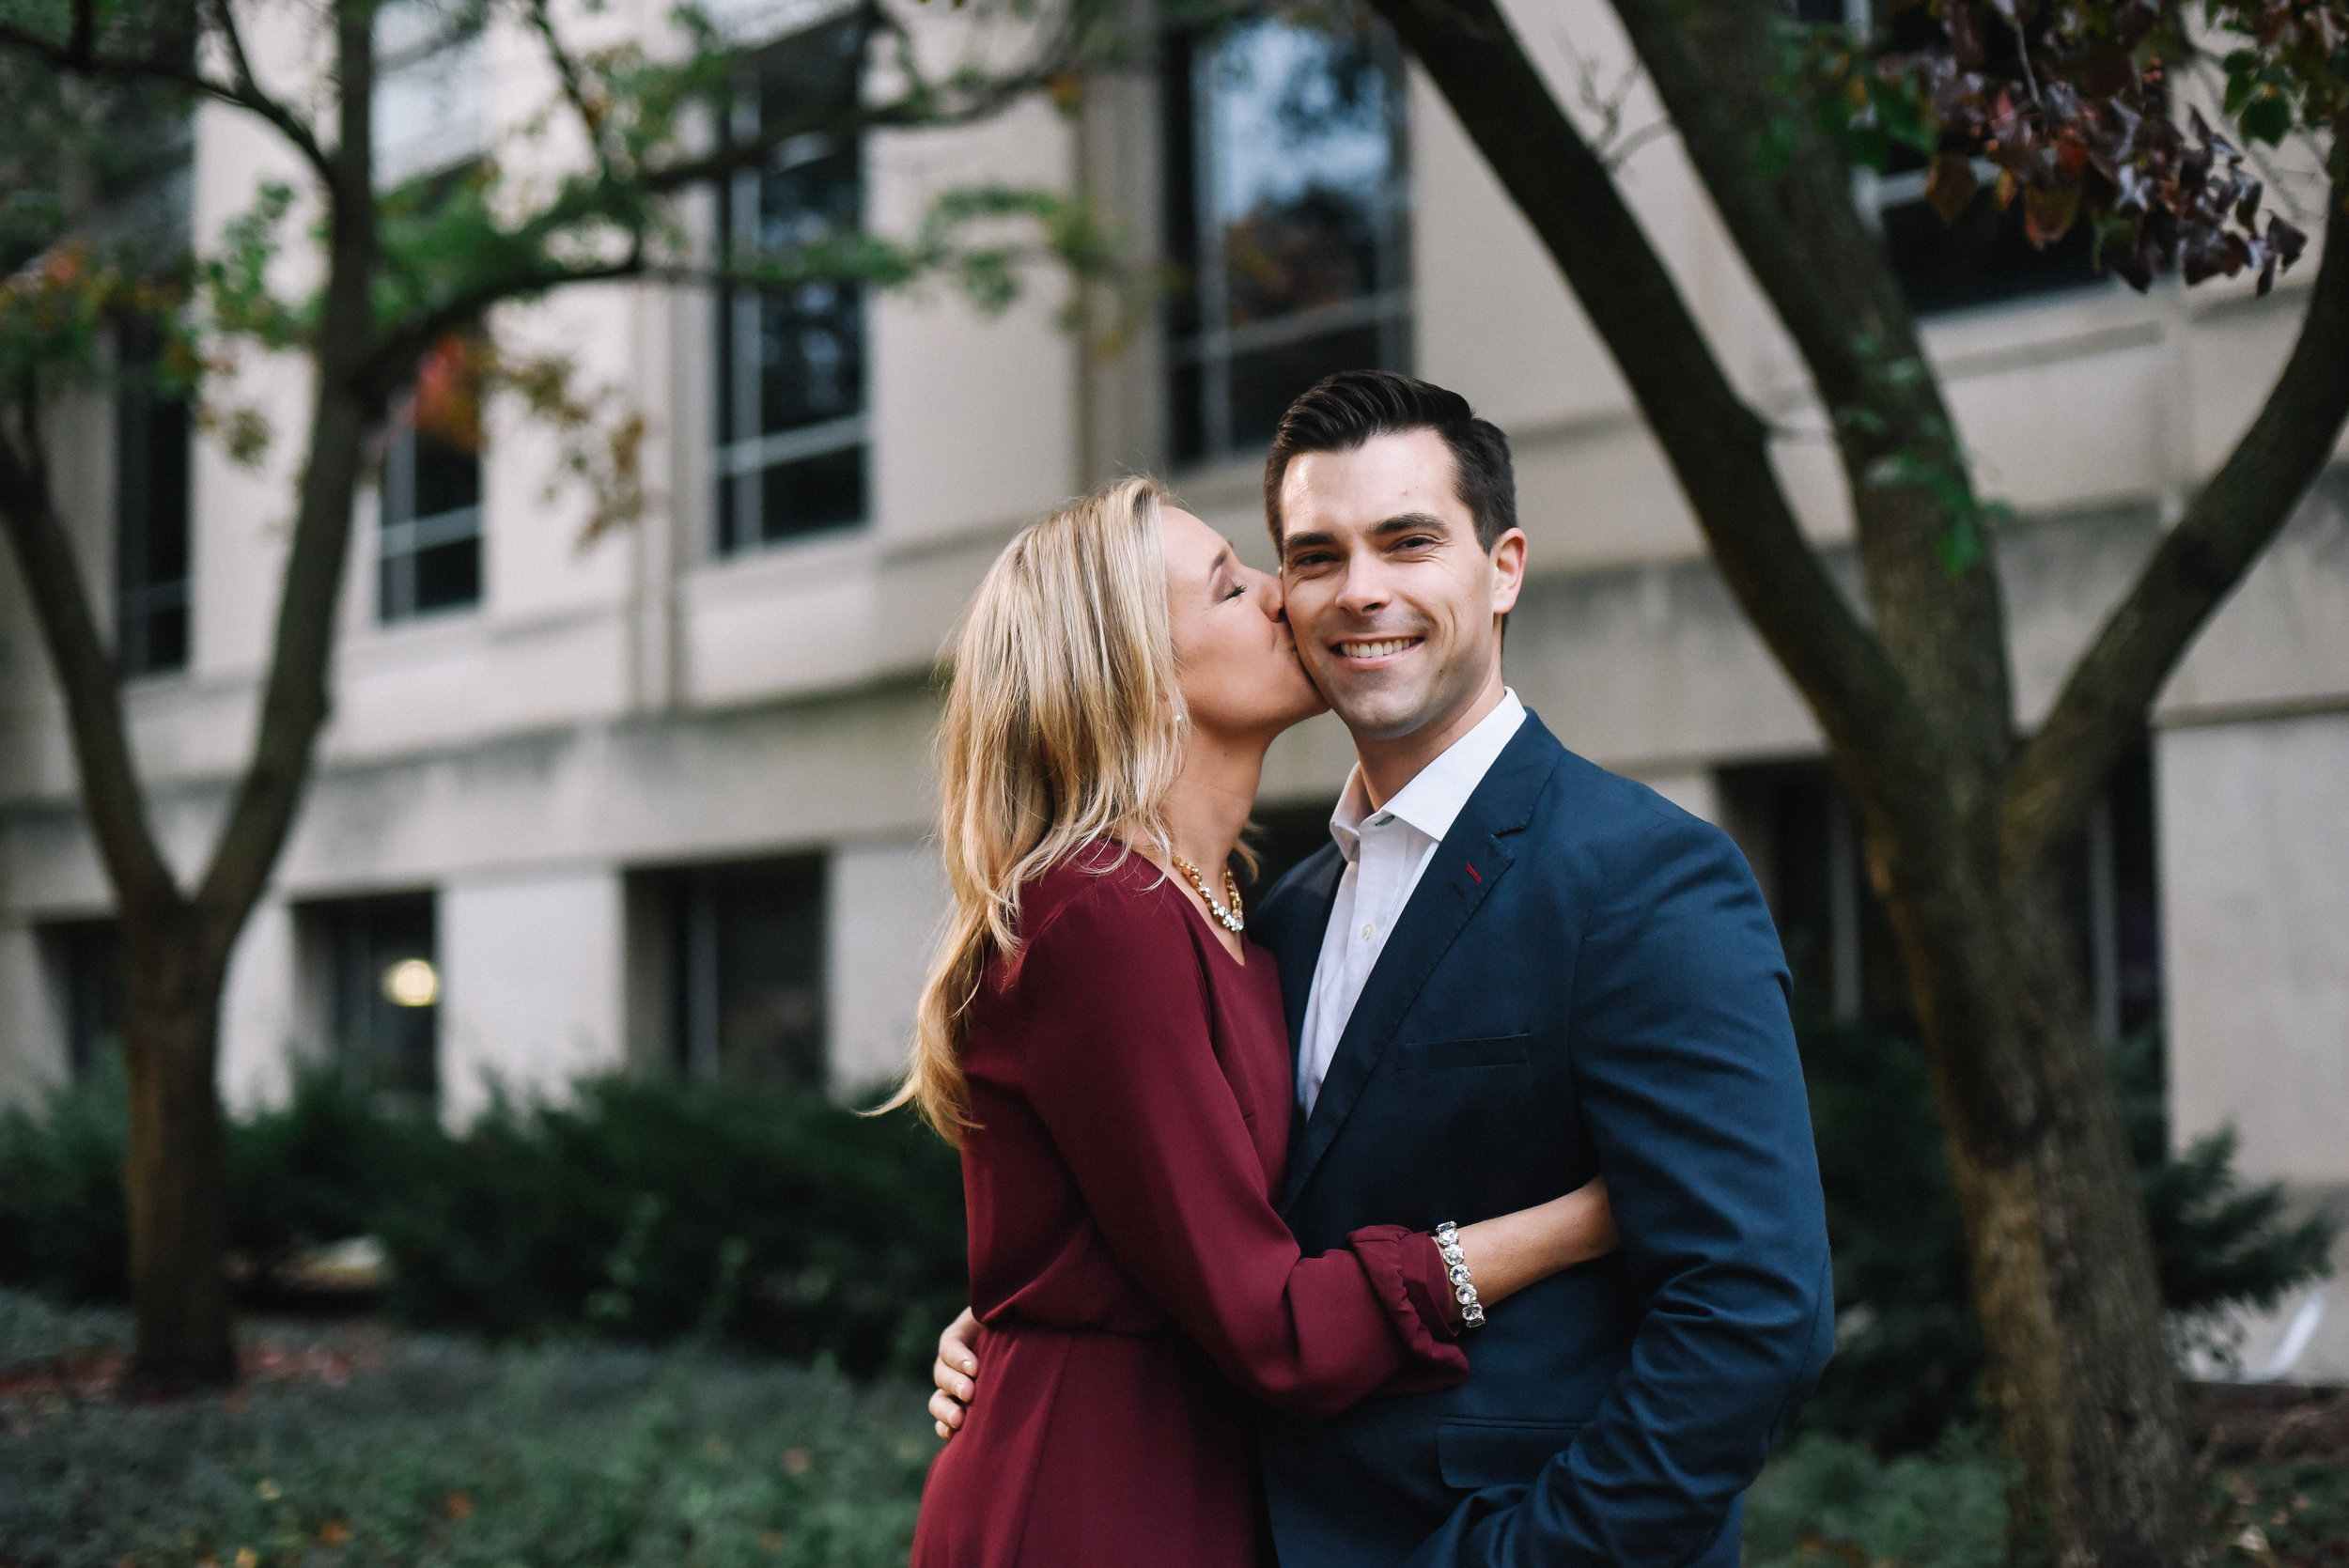 Downtown_Ann_Arbor_Arboretum_Engagement_Photos-21.jpg